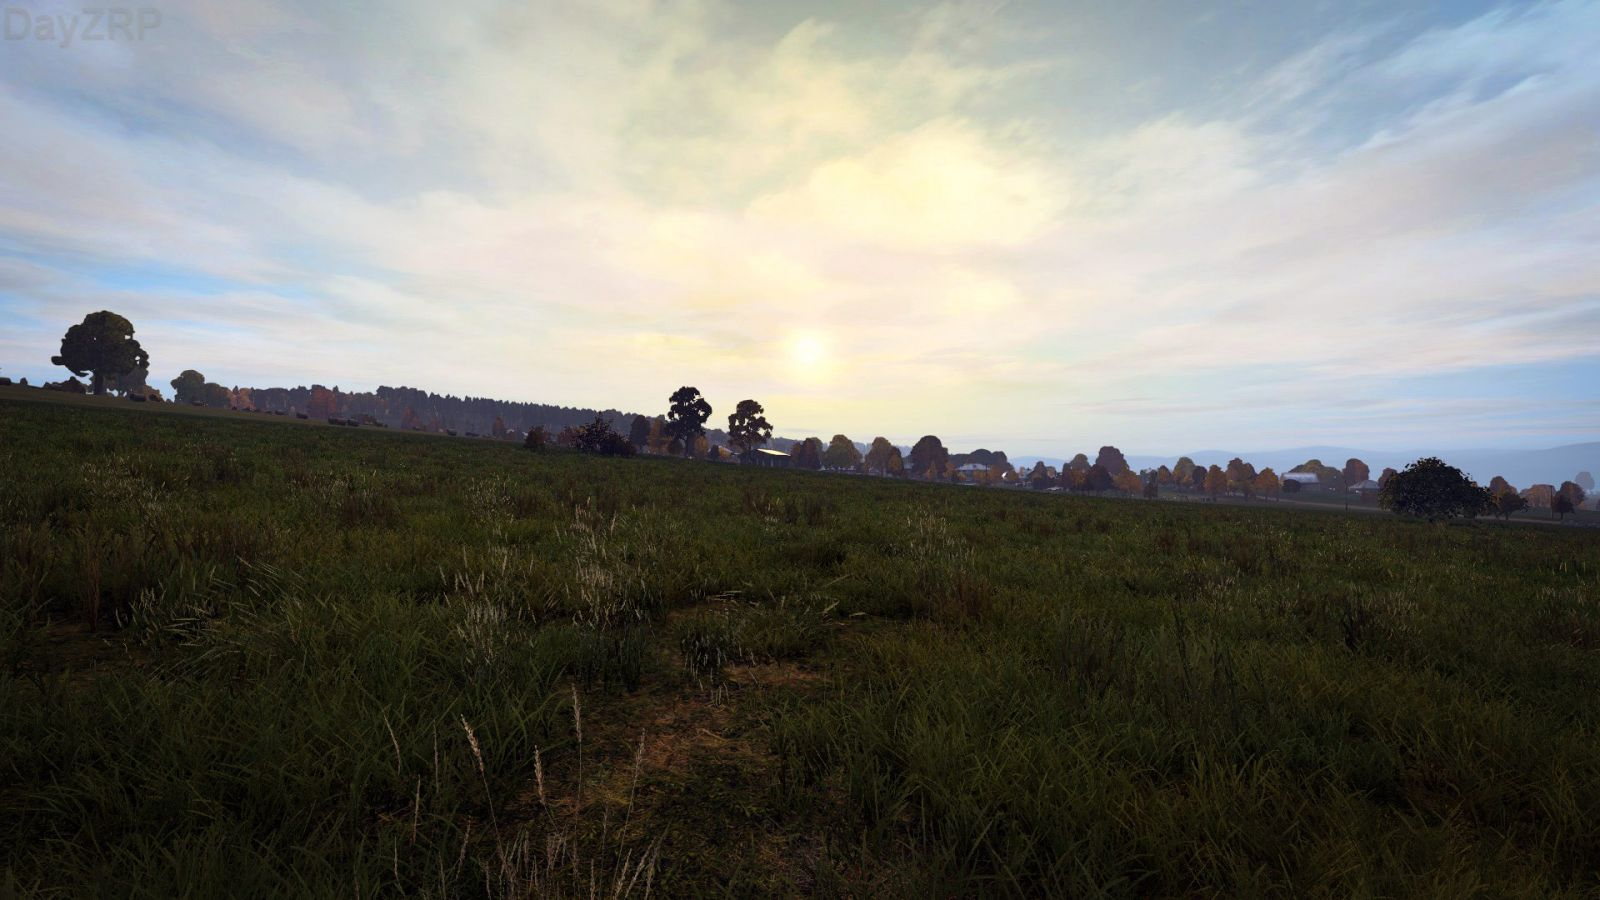 Sunset in Pustoshka